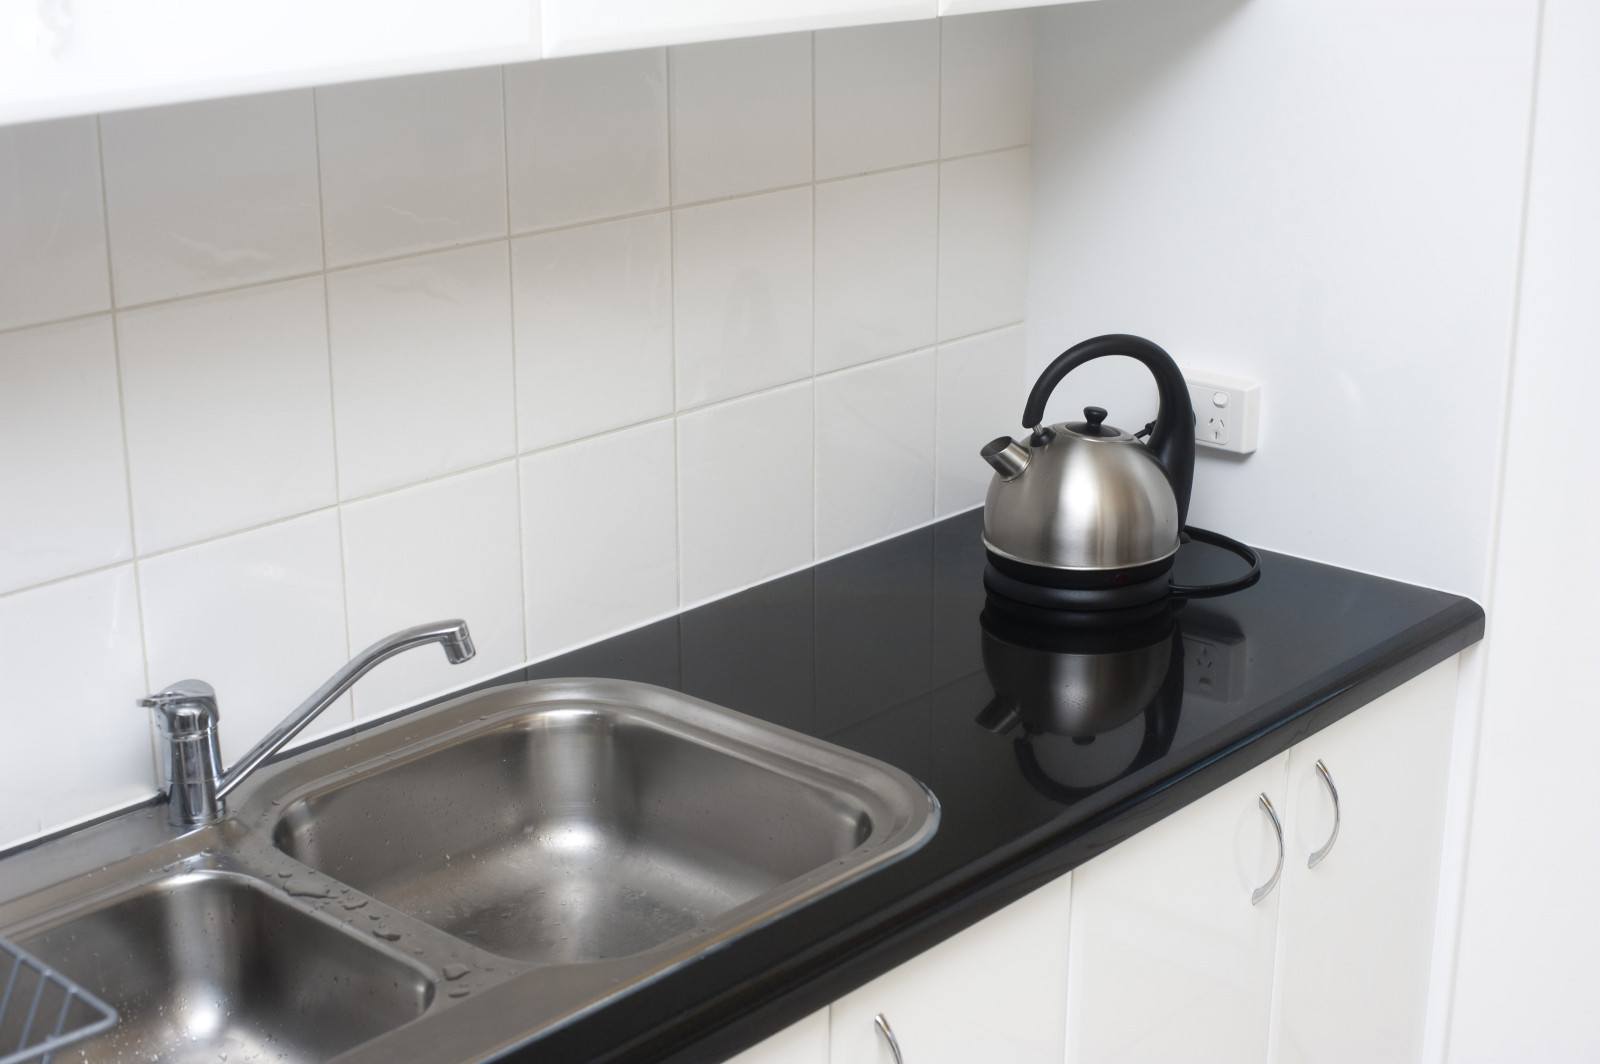 Small Kitchen Sinks  Free Stock 8210 Small kitchen with double sink unit